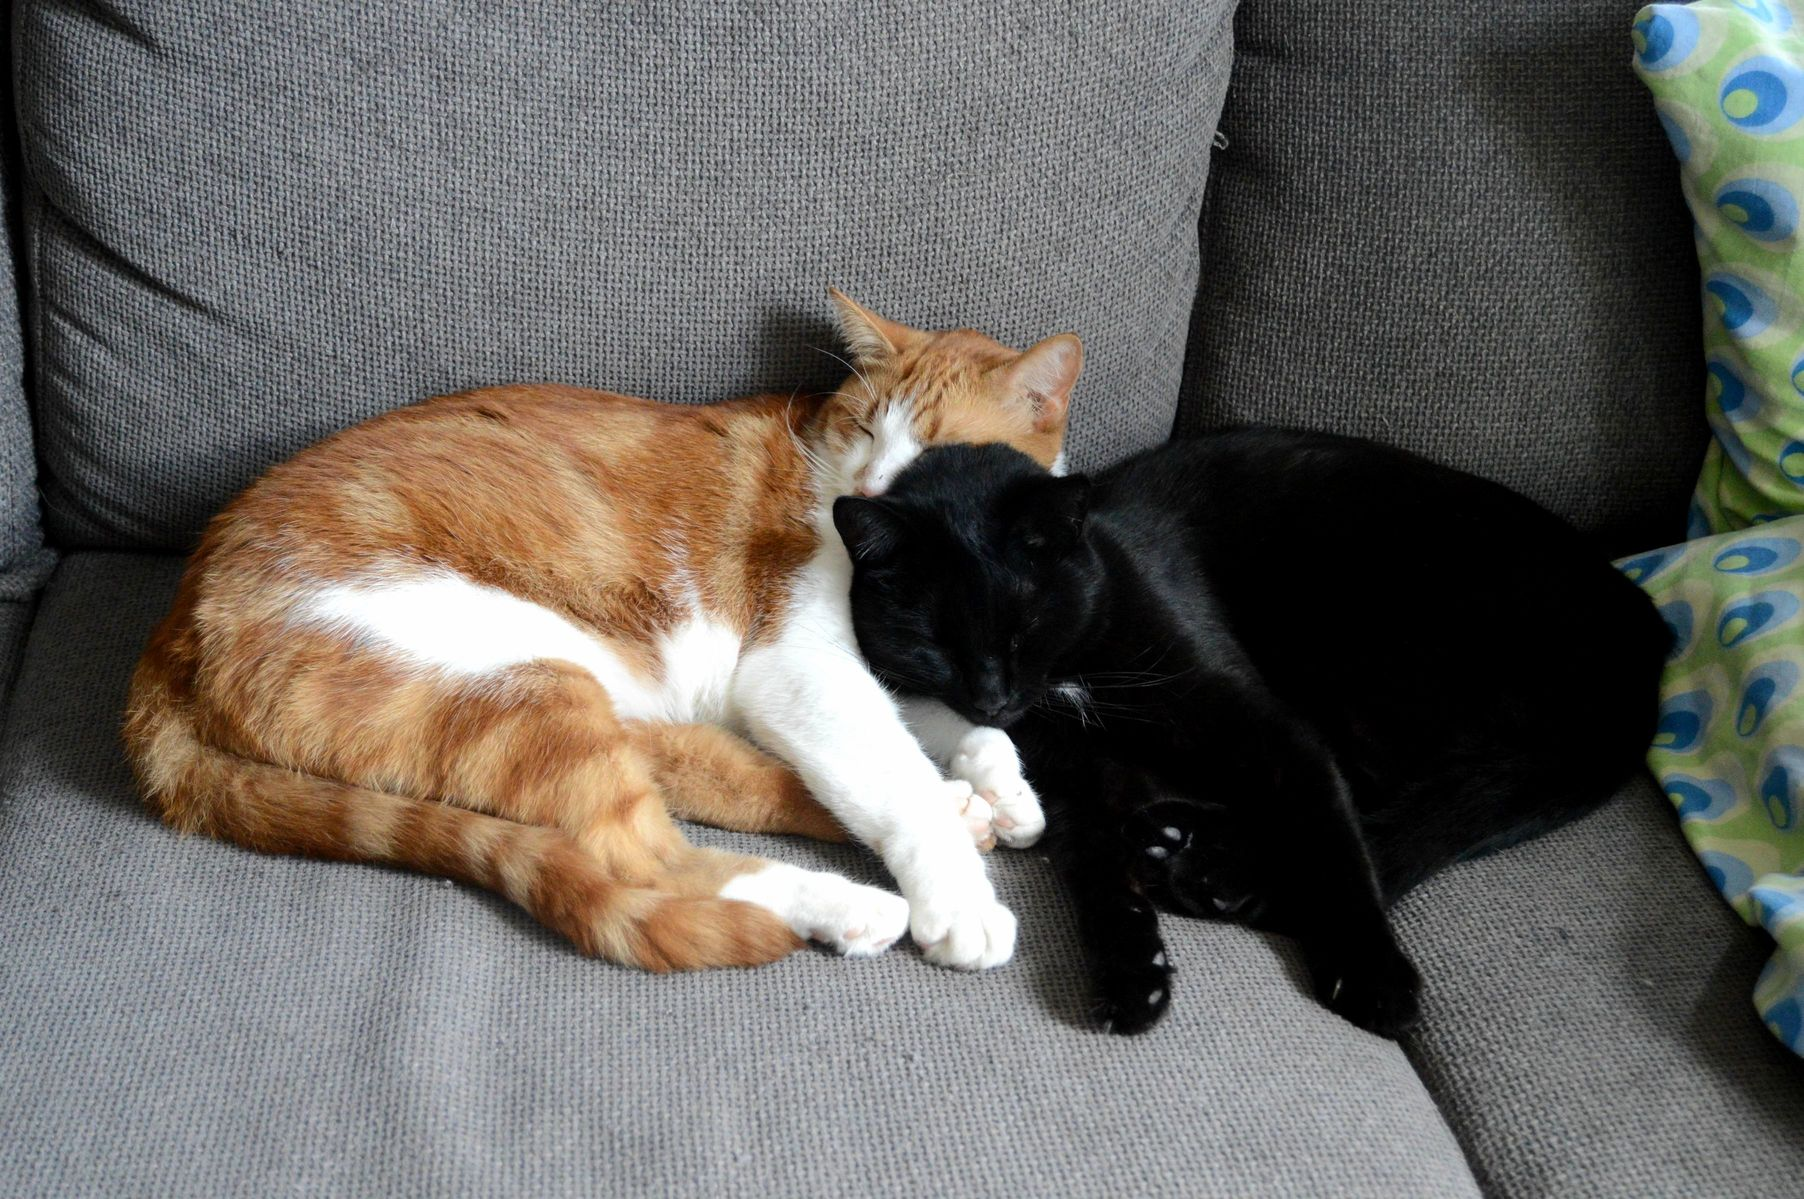 Cuddling together